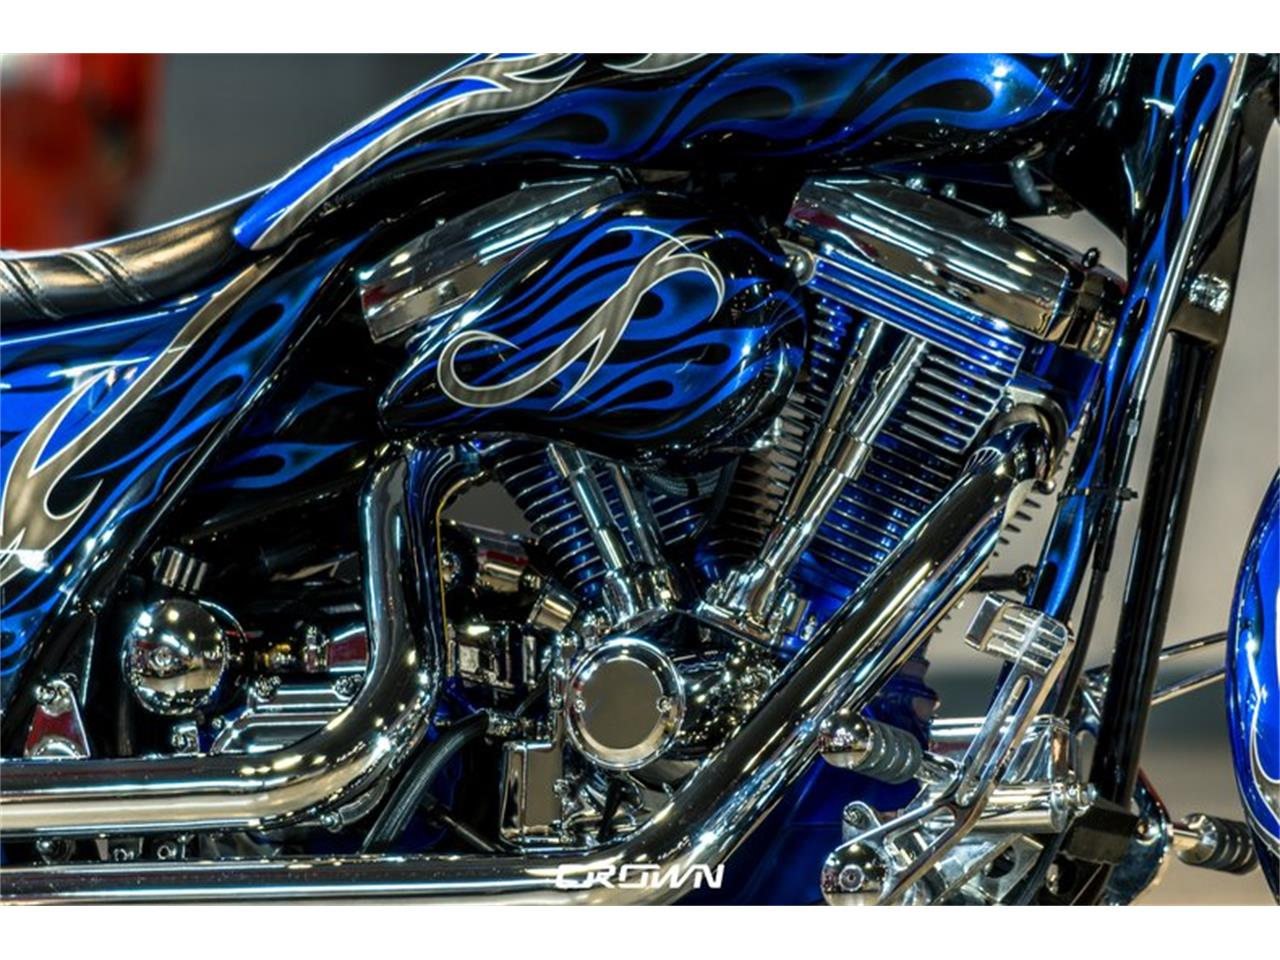 1987 Harley-Davidson Motorcycle for sale in Tucson, AZ – photo 7